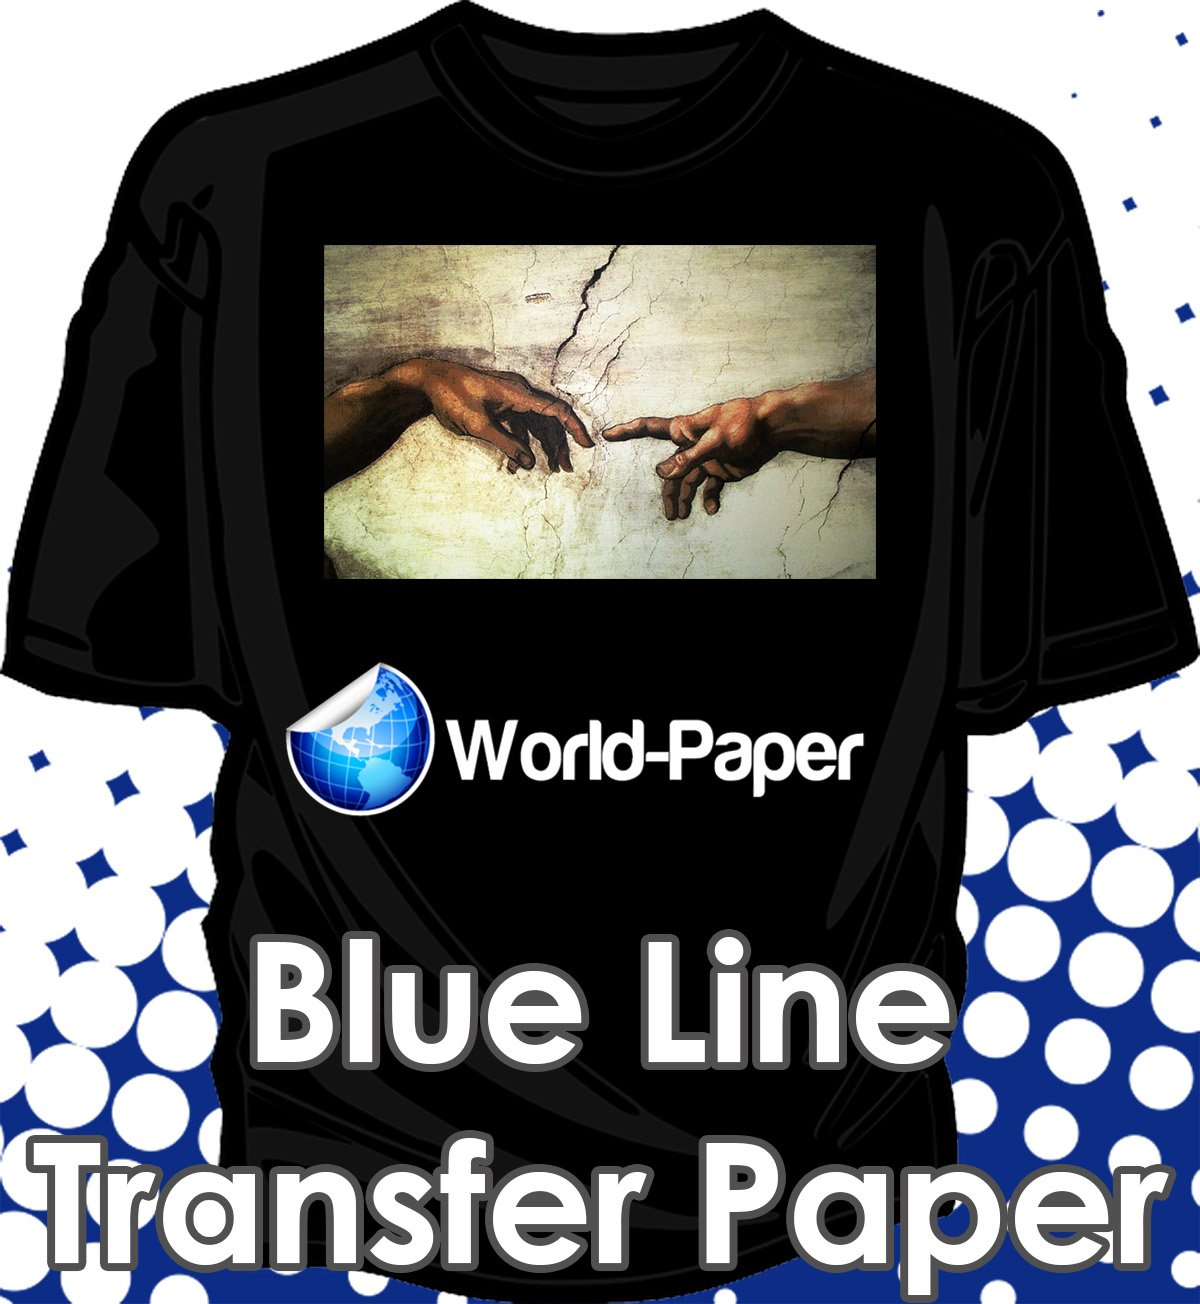 Ink Jet Printer Heat Transfer Papers for Dark Fabrics - Blue Line - 8.5'' X 11'', 30 Sheets